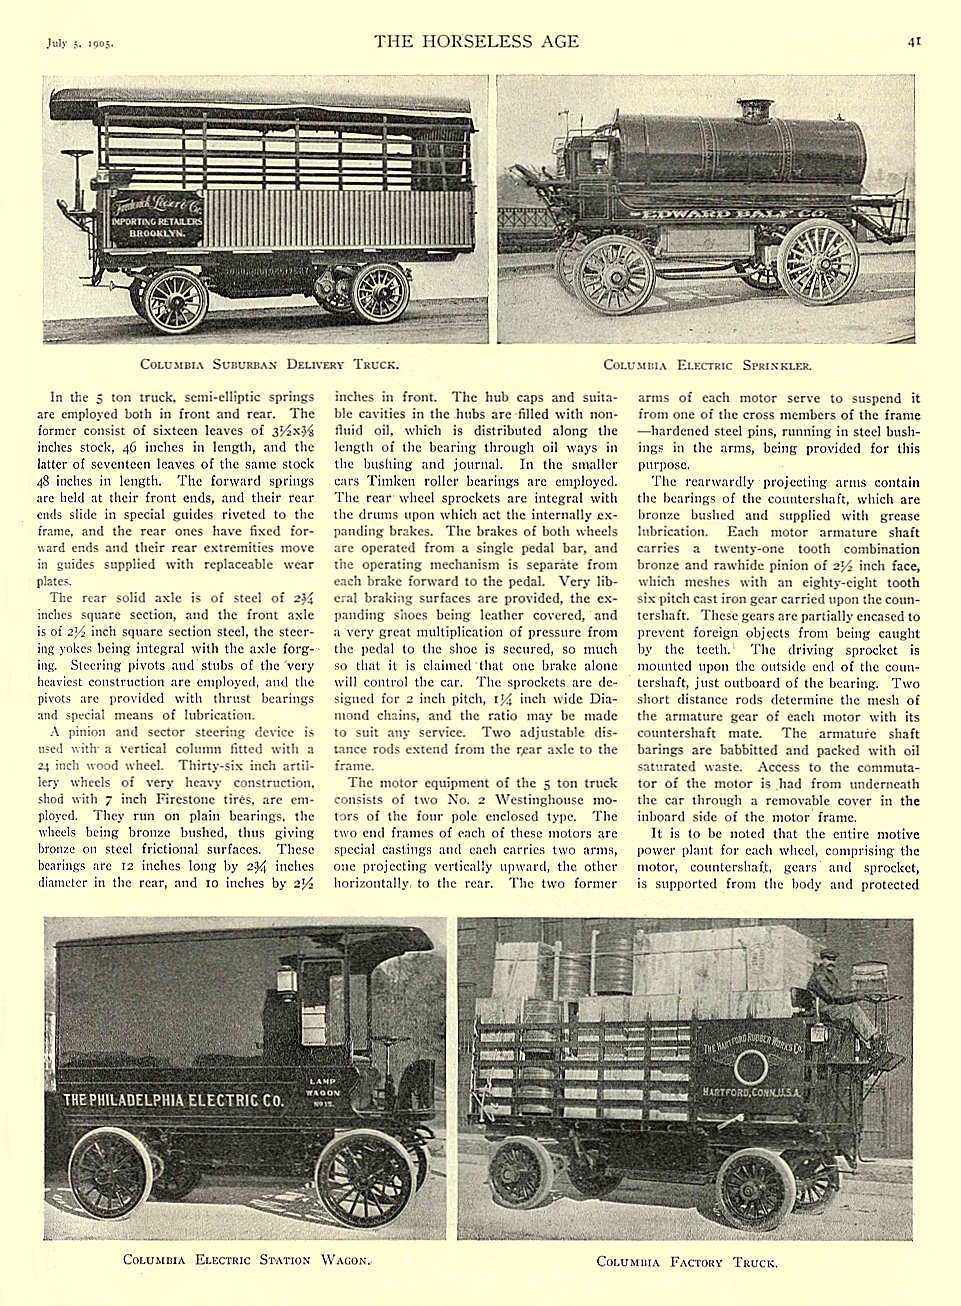 1905 7 5 COLUMBIA Electric Truck Columbia Suburban Delivery Truck Columbia Electric Sprinkler Columbia Electric Station Wagon Columbia Factory Truck THE HORSELESS AGE July 5, 1905 University of Minnesota Library 8.5″x11.5″ page 41